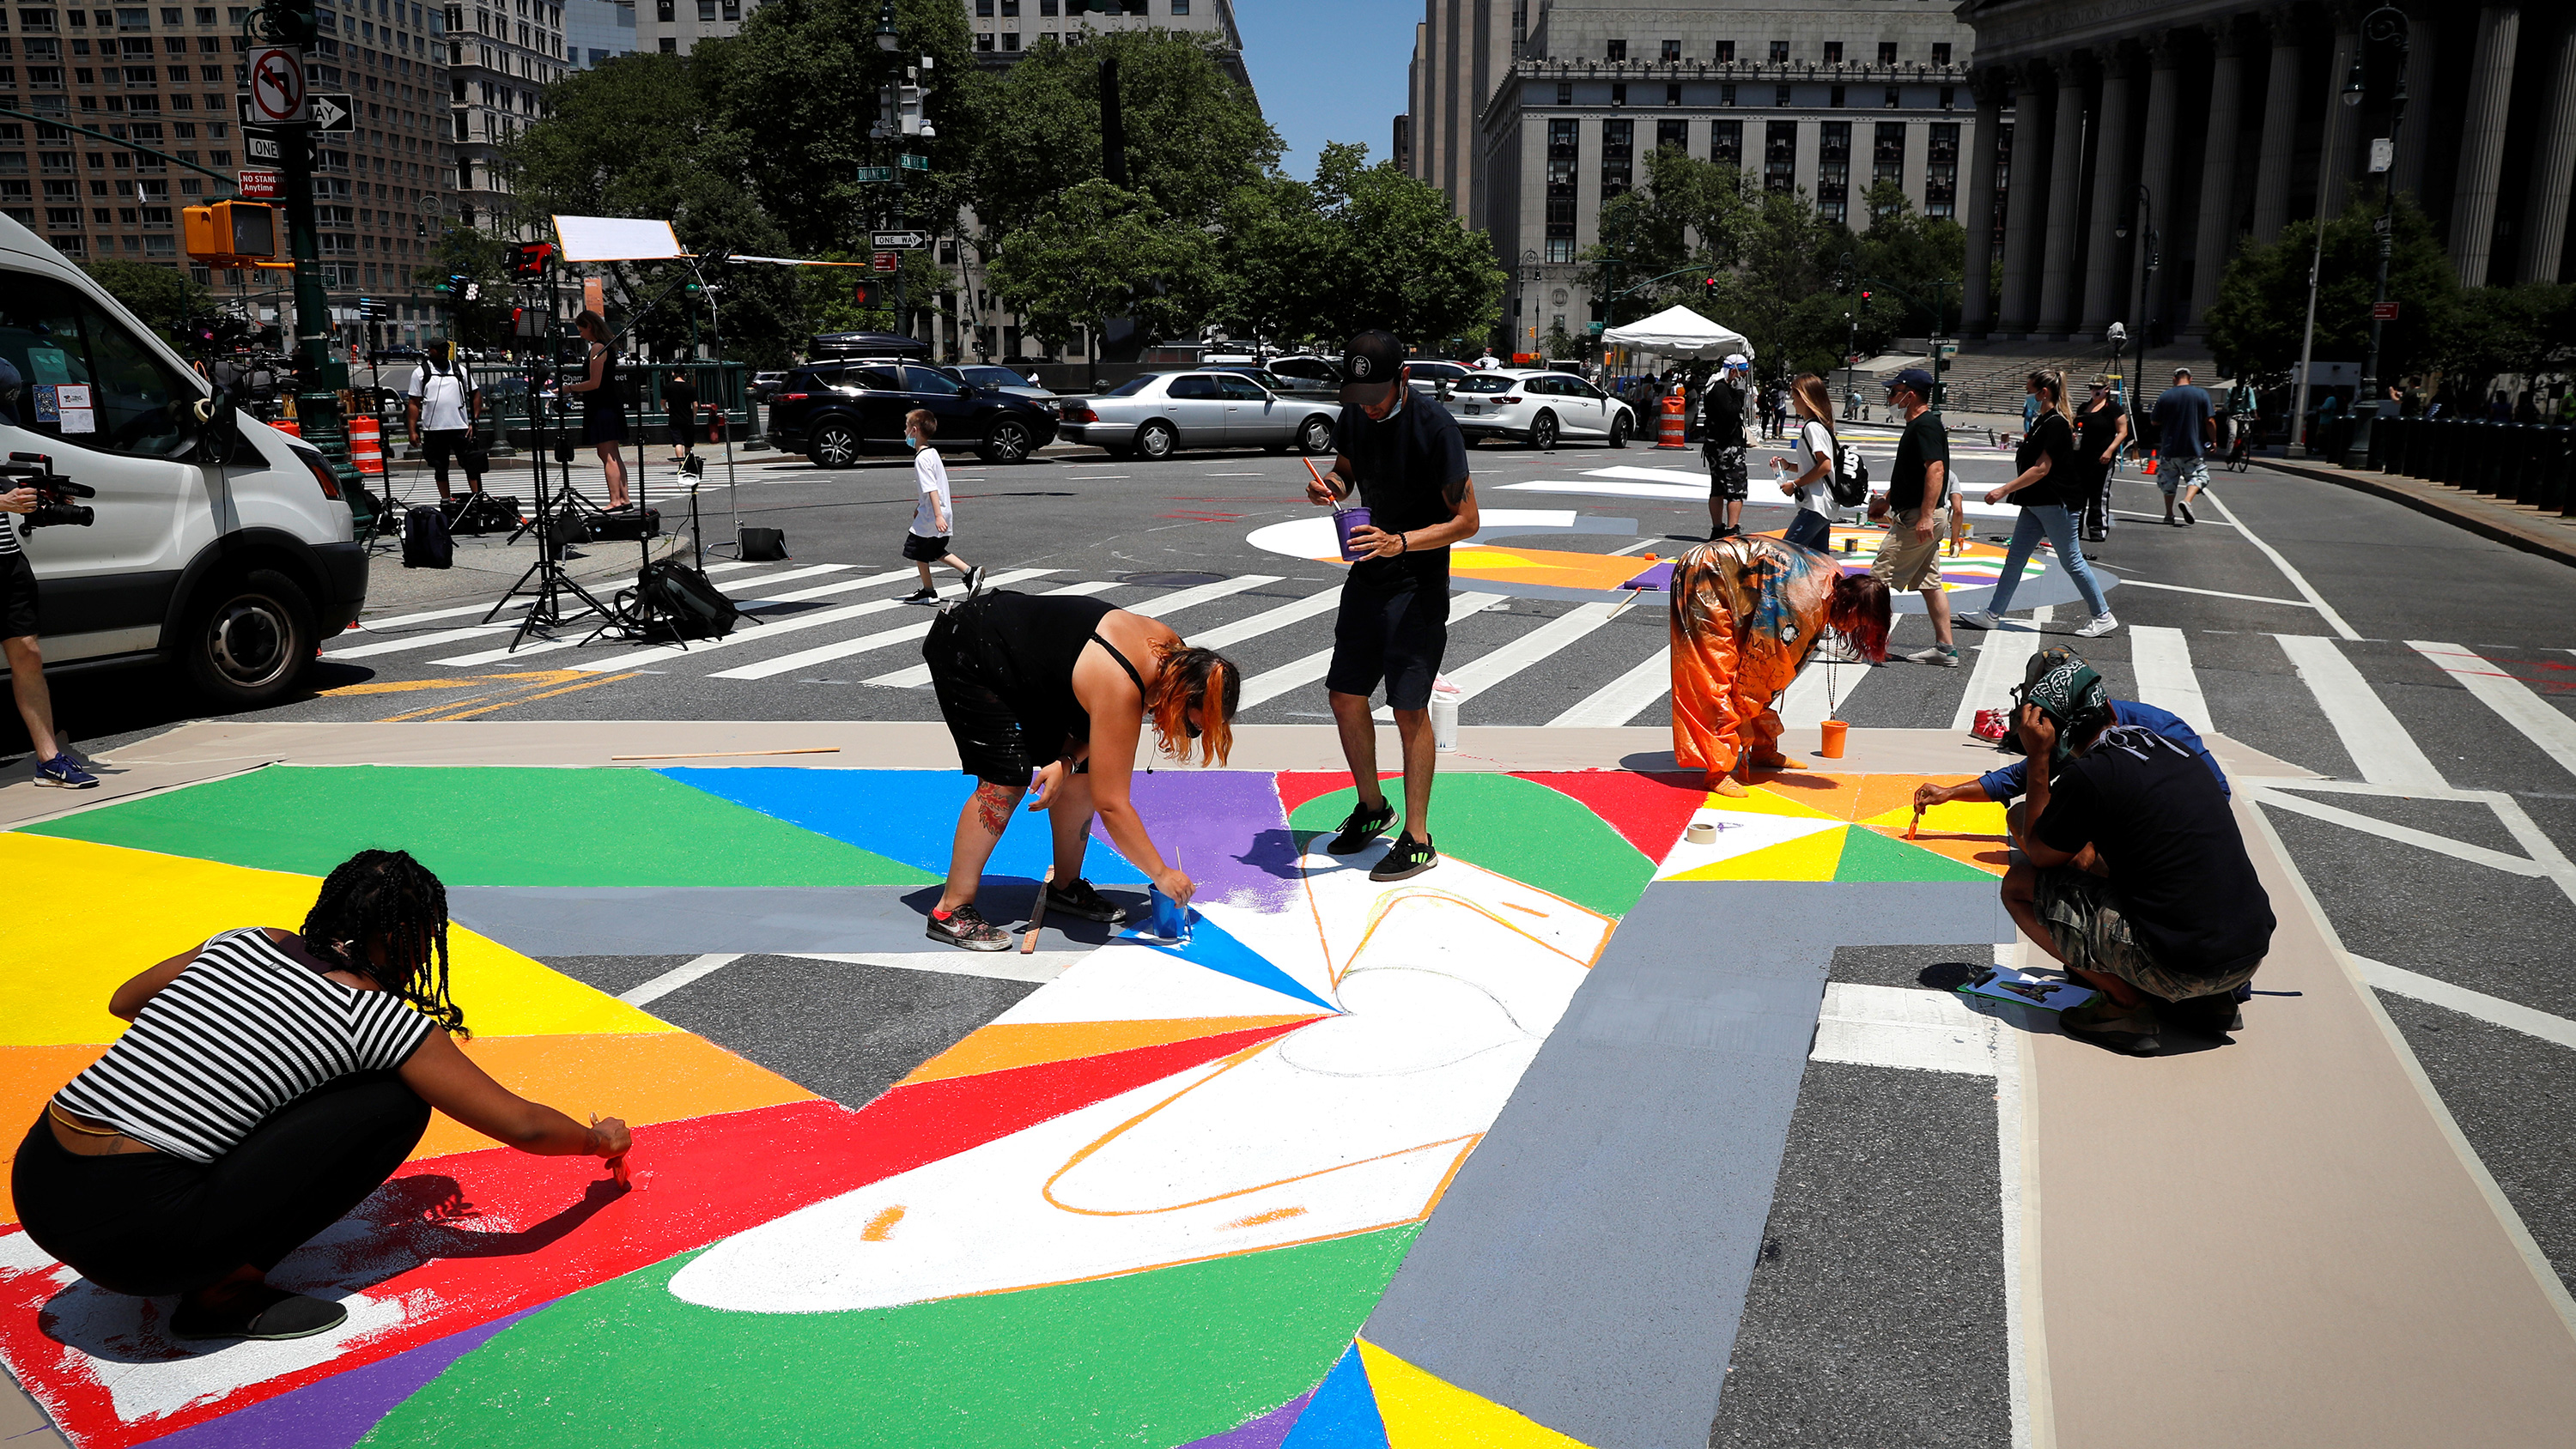 The photo shows people in the streets paining a colorful mural on the ground.